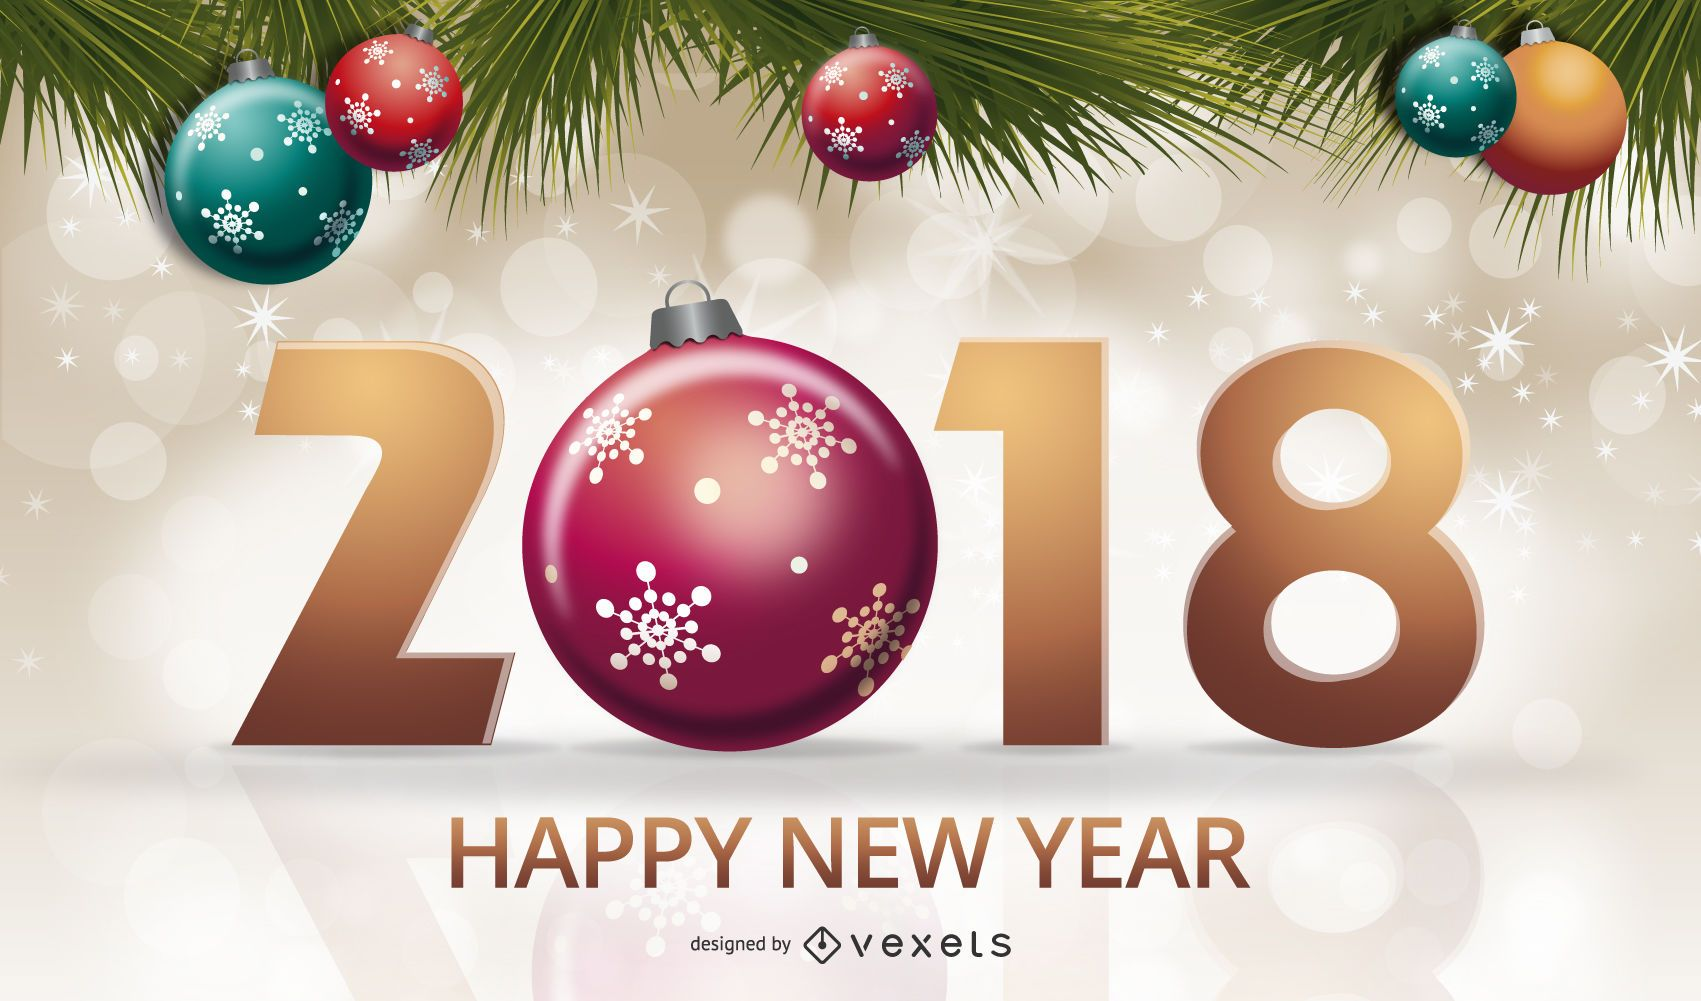 2018 New Year sign with ornaments